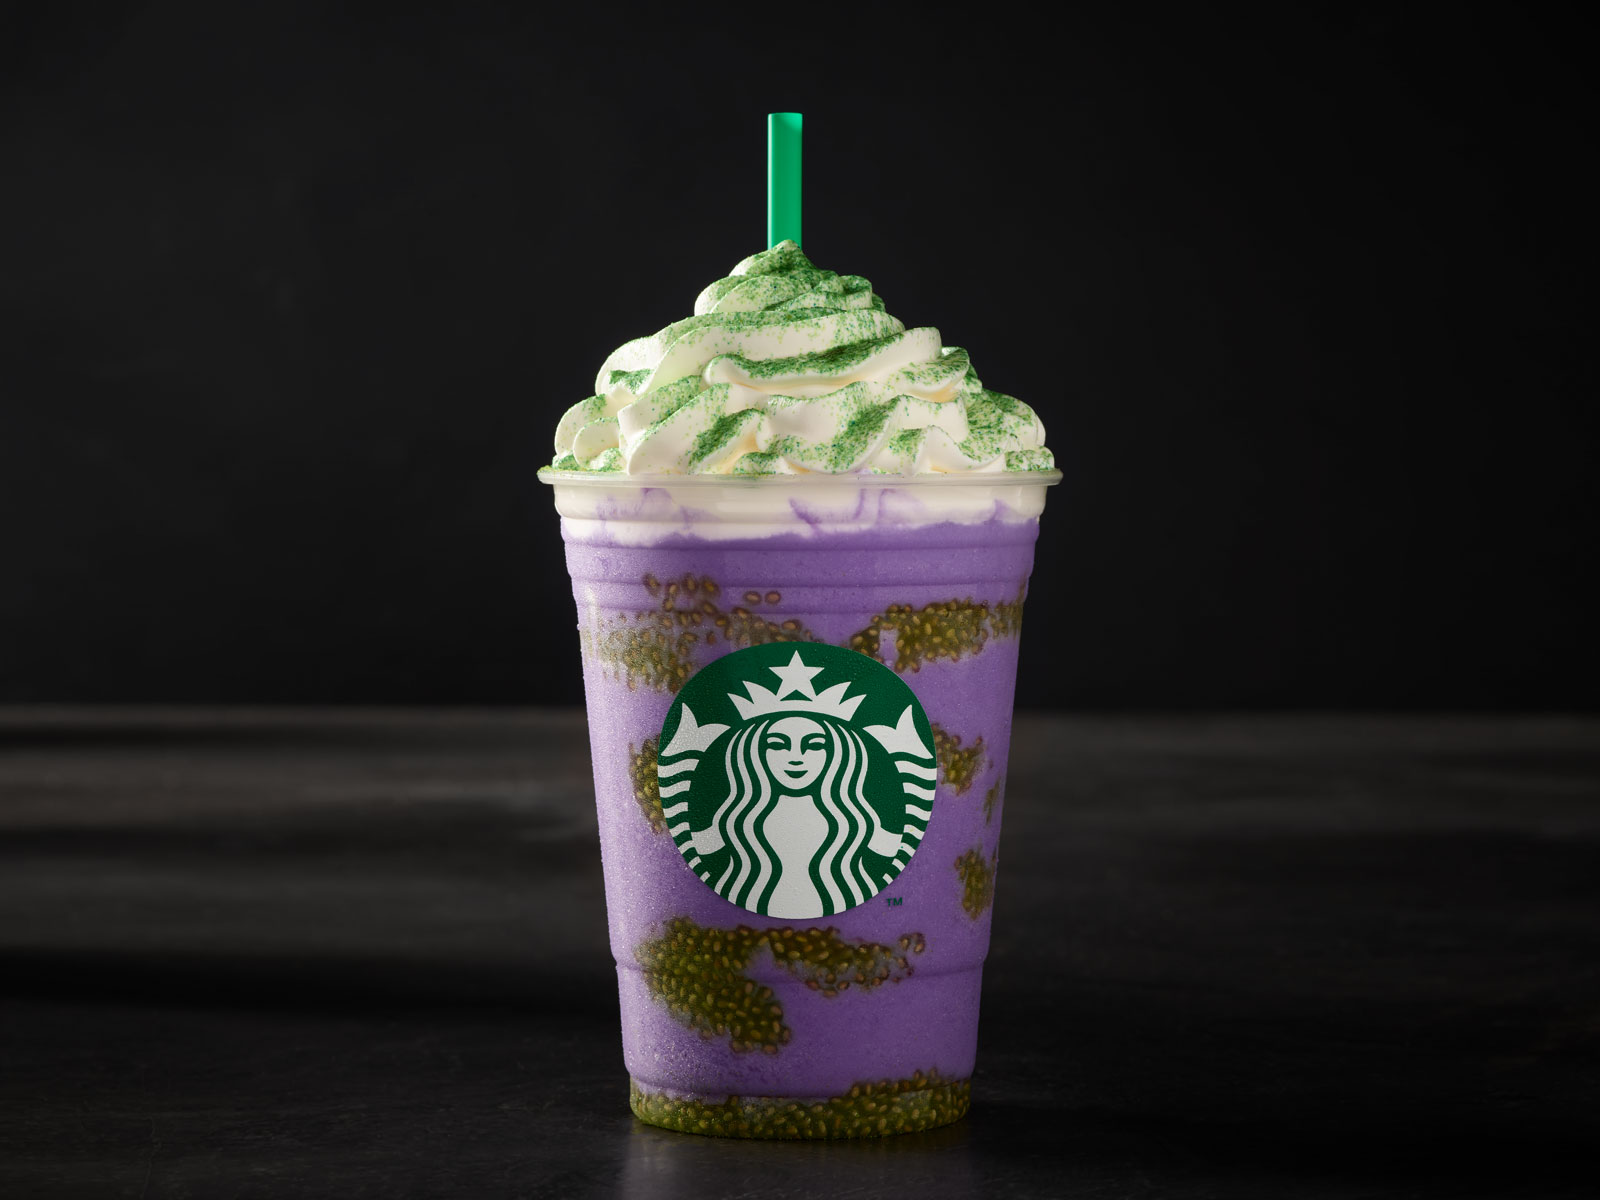 Starbucks Witches Brew Frappuccino On Black Ft Itok Hd What Does